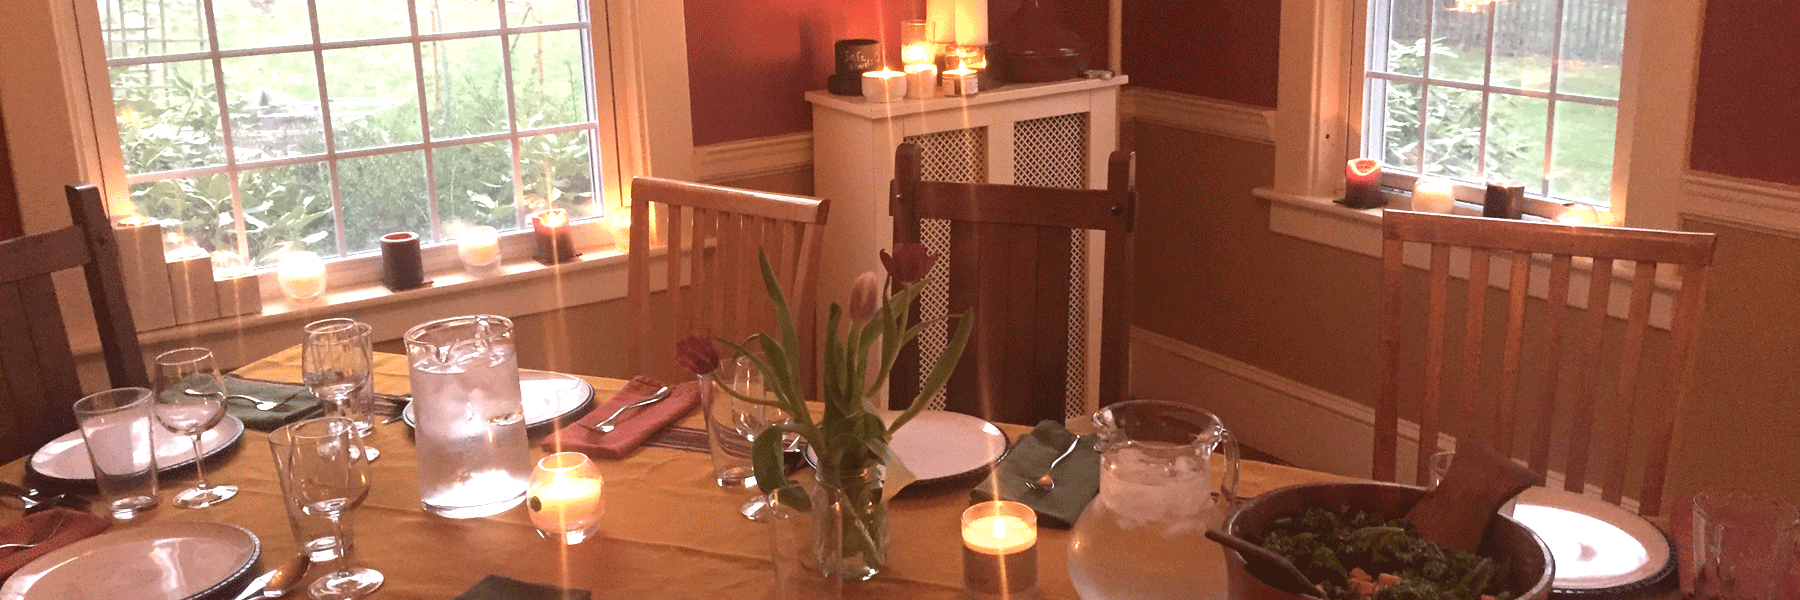 Fair trade candles lit in dining room handmade by Propserity Candle's women artisans